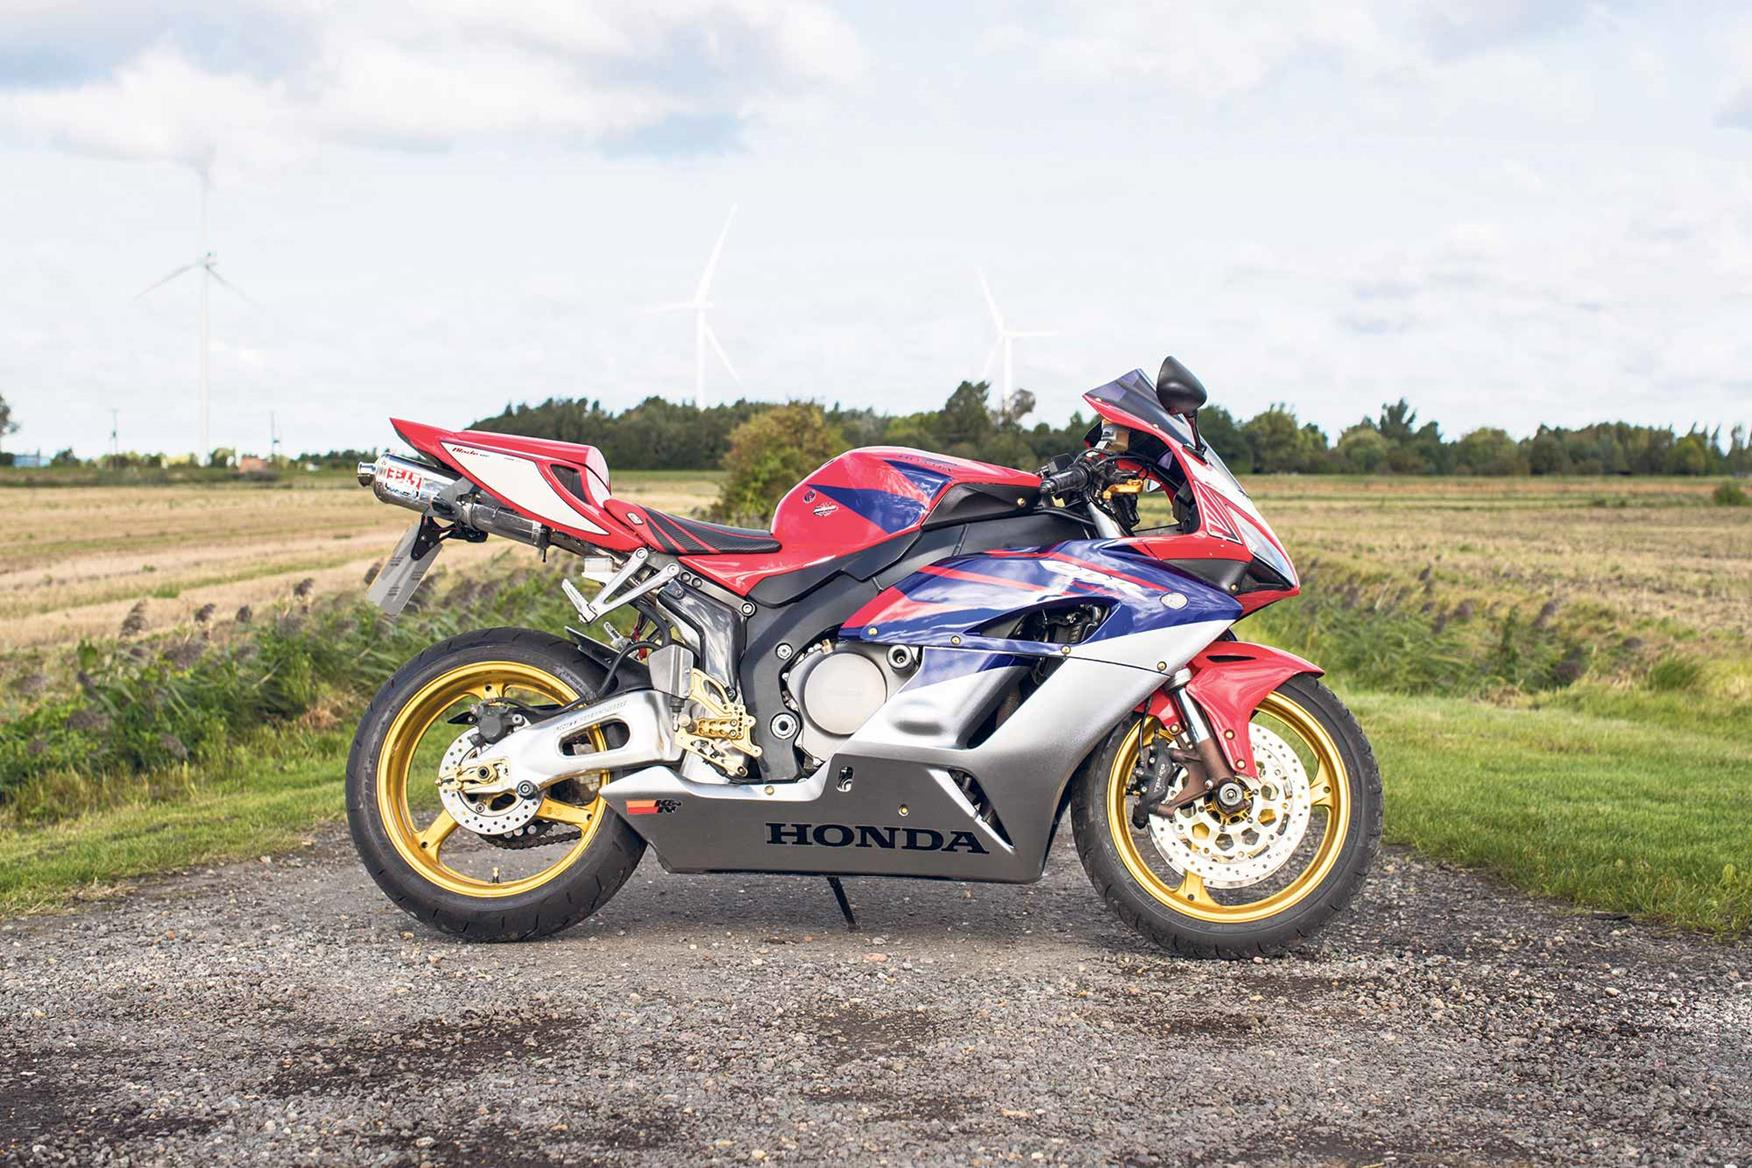 The 2004 Honda CBR1000RR Fireblade